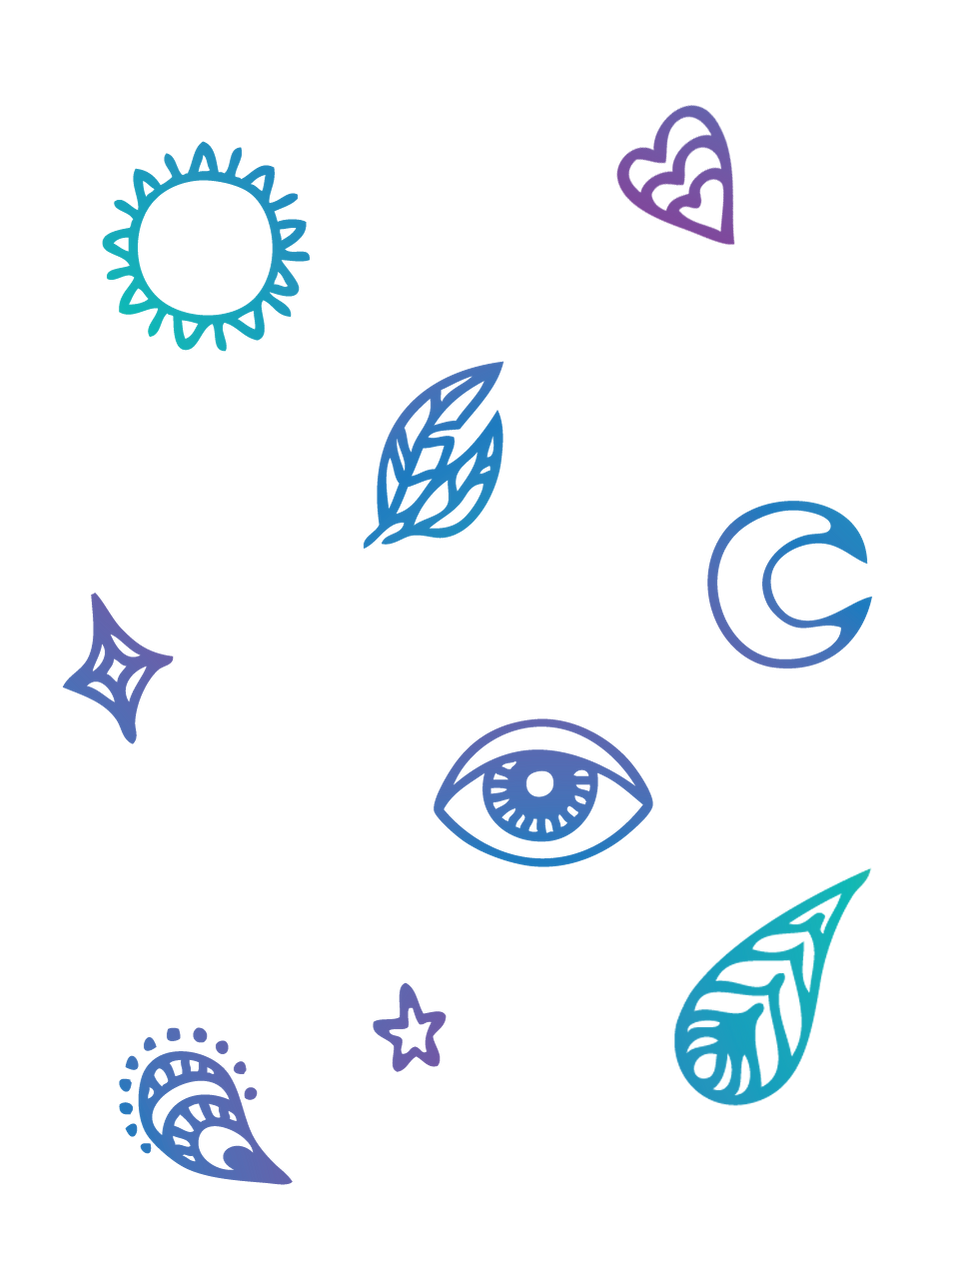 elements-background.png